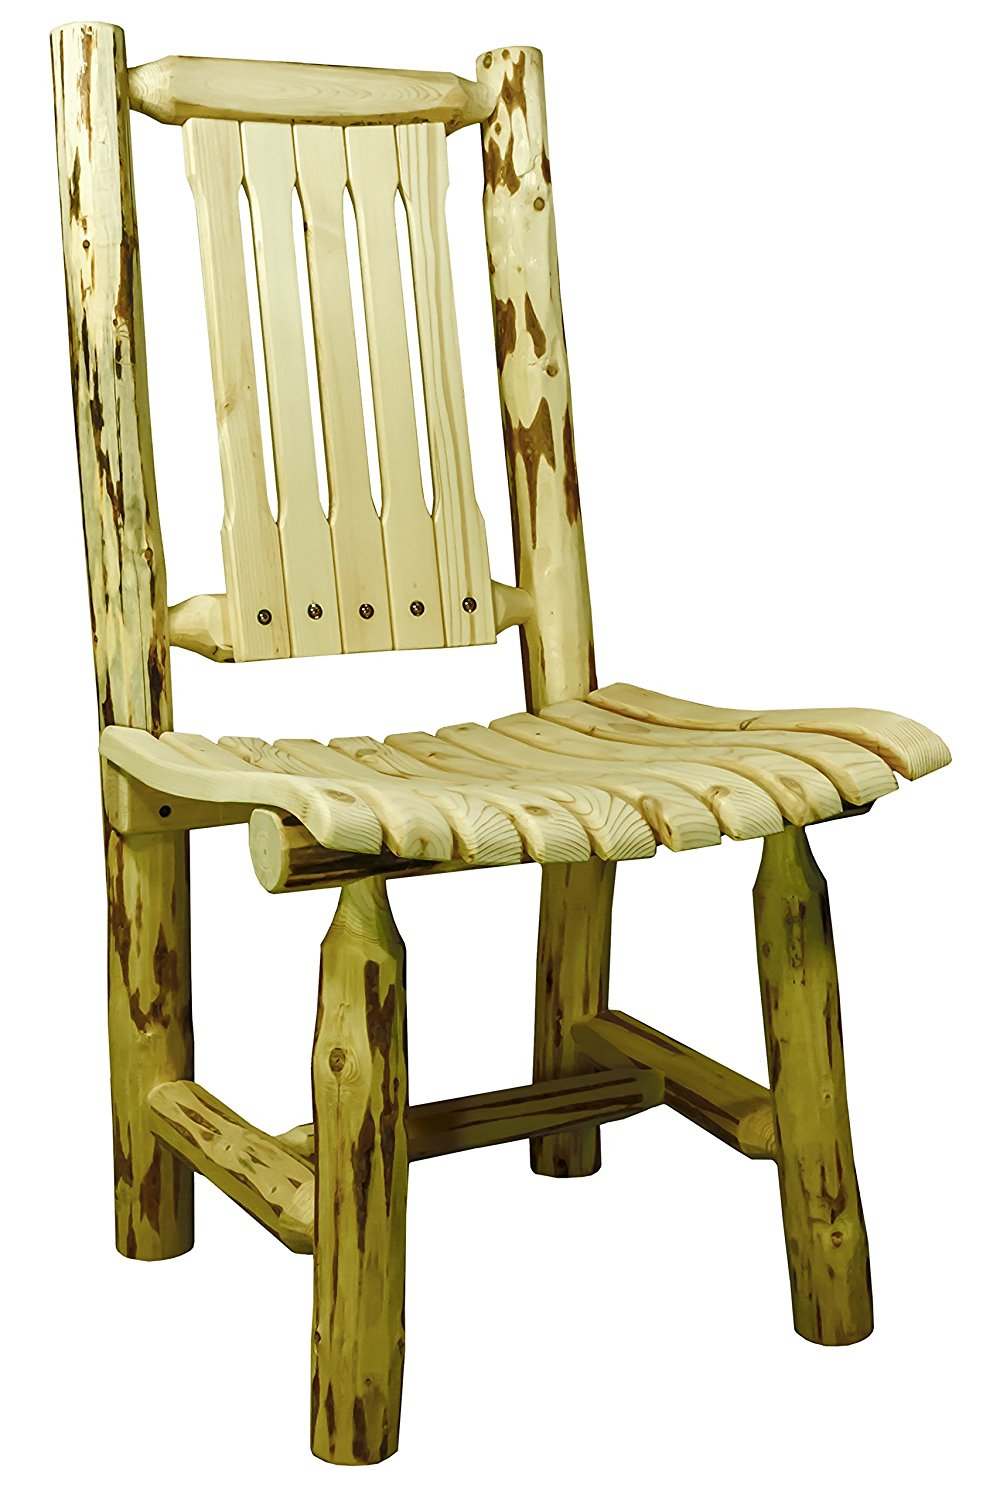 Montana Woodworks MWEPCVAZ Patio Chair, Clear Exterior Finish